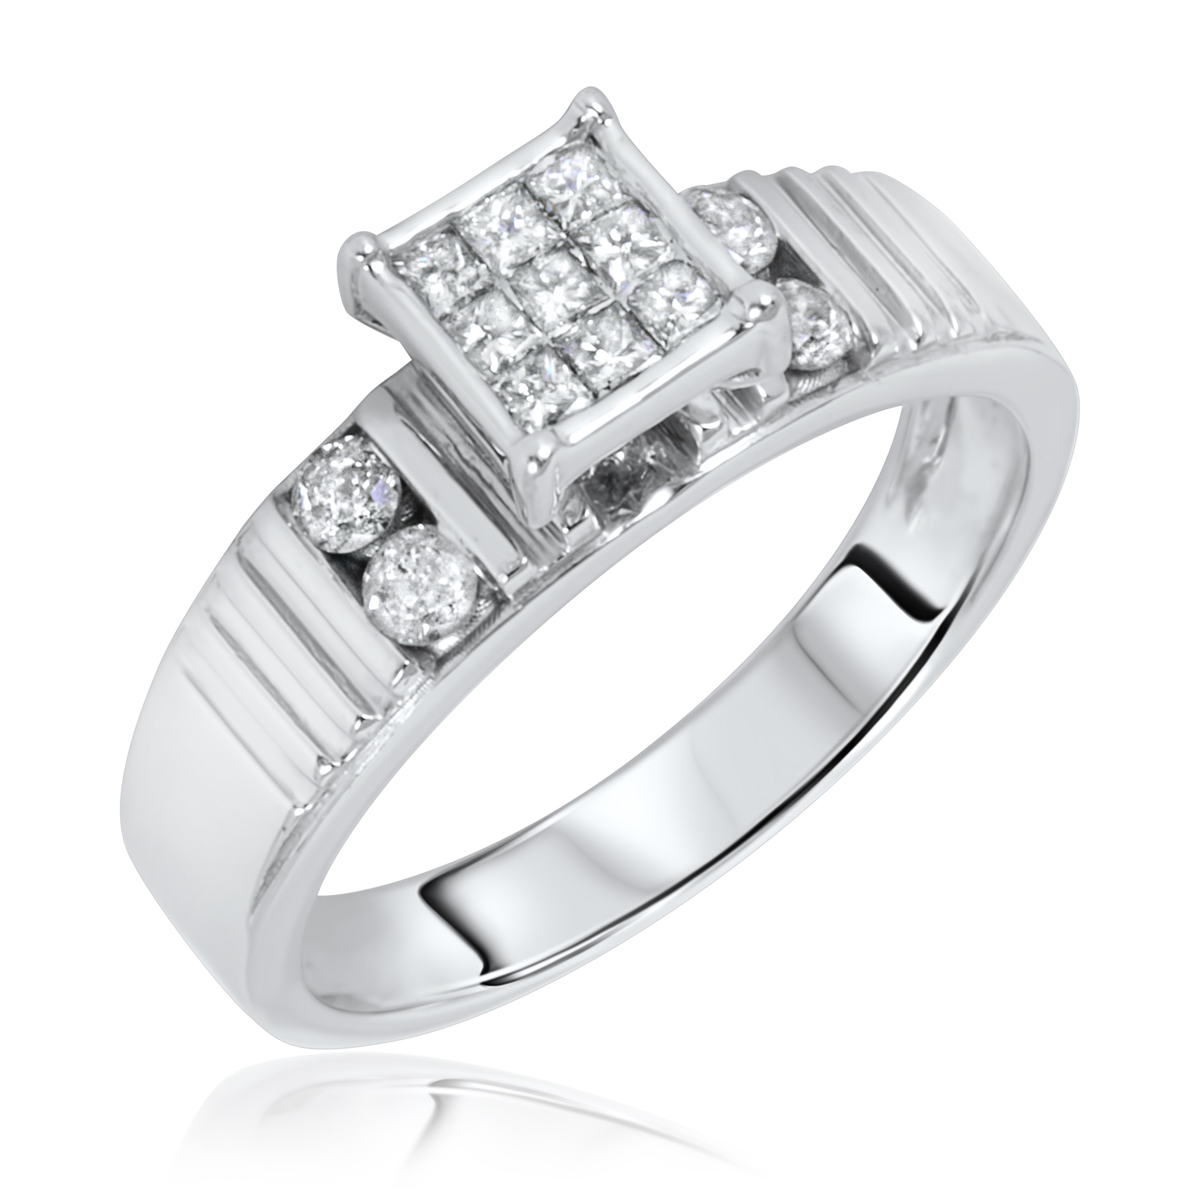 1 1 2 Carat TW Diamond Women S Engagement Ring 14K White Gold BT143W14KE